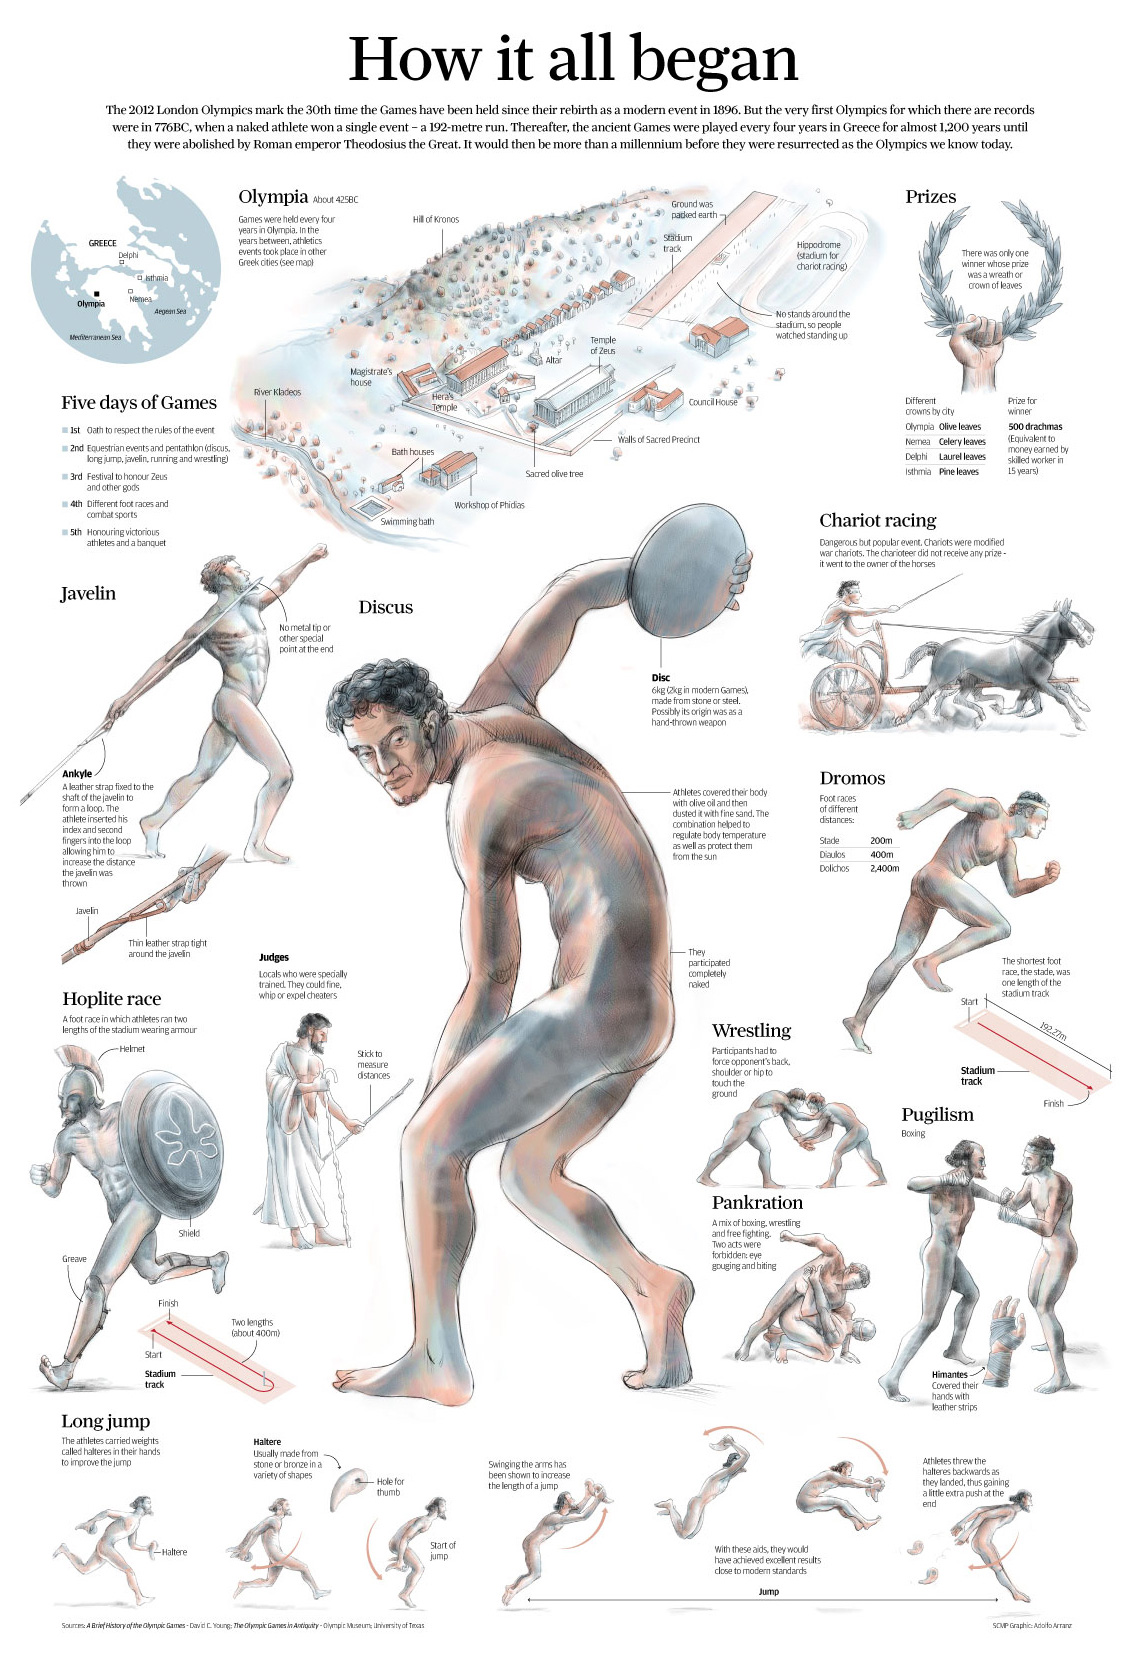 ancient olympics The olympics games that we know and celebrate today stem from events that  were held thousands of years ago in ancient greece.